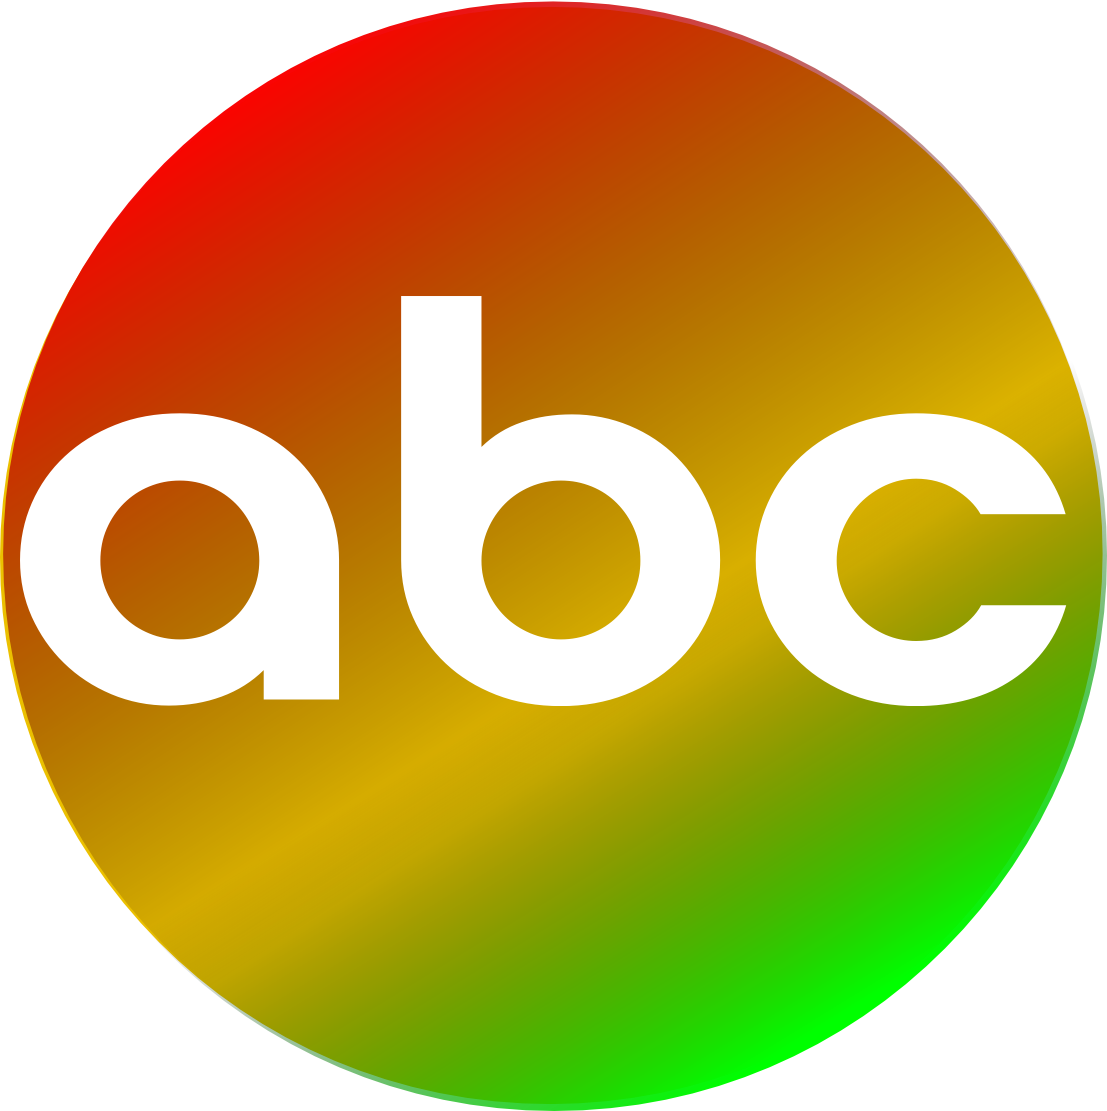 Abc portugal.png - Abc Logo PNG